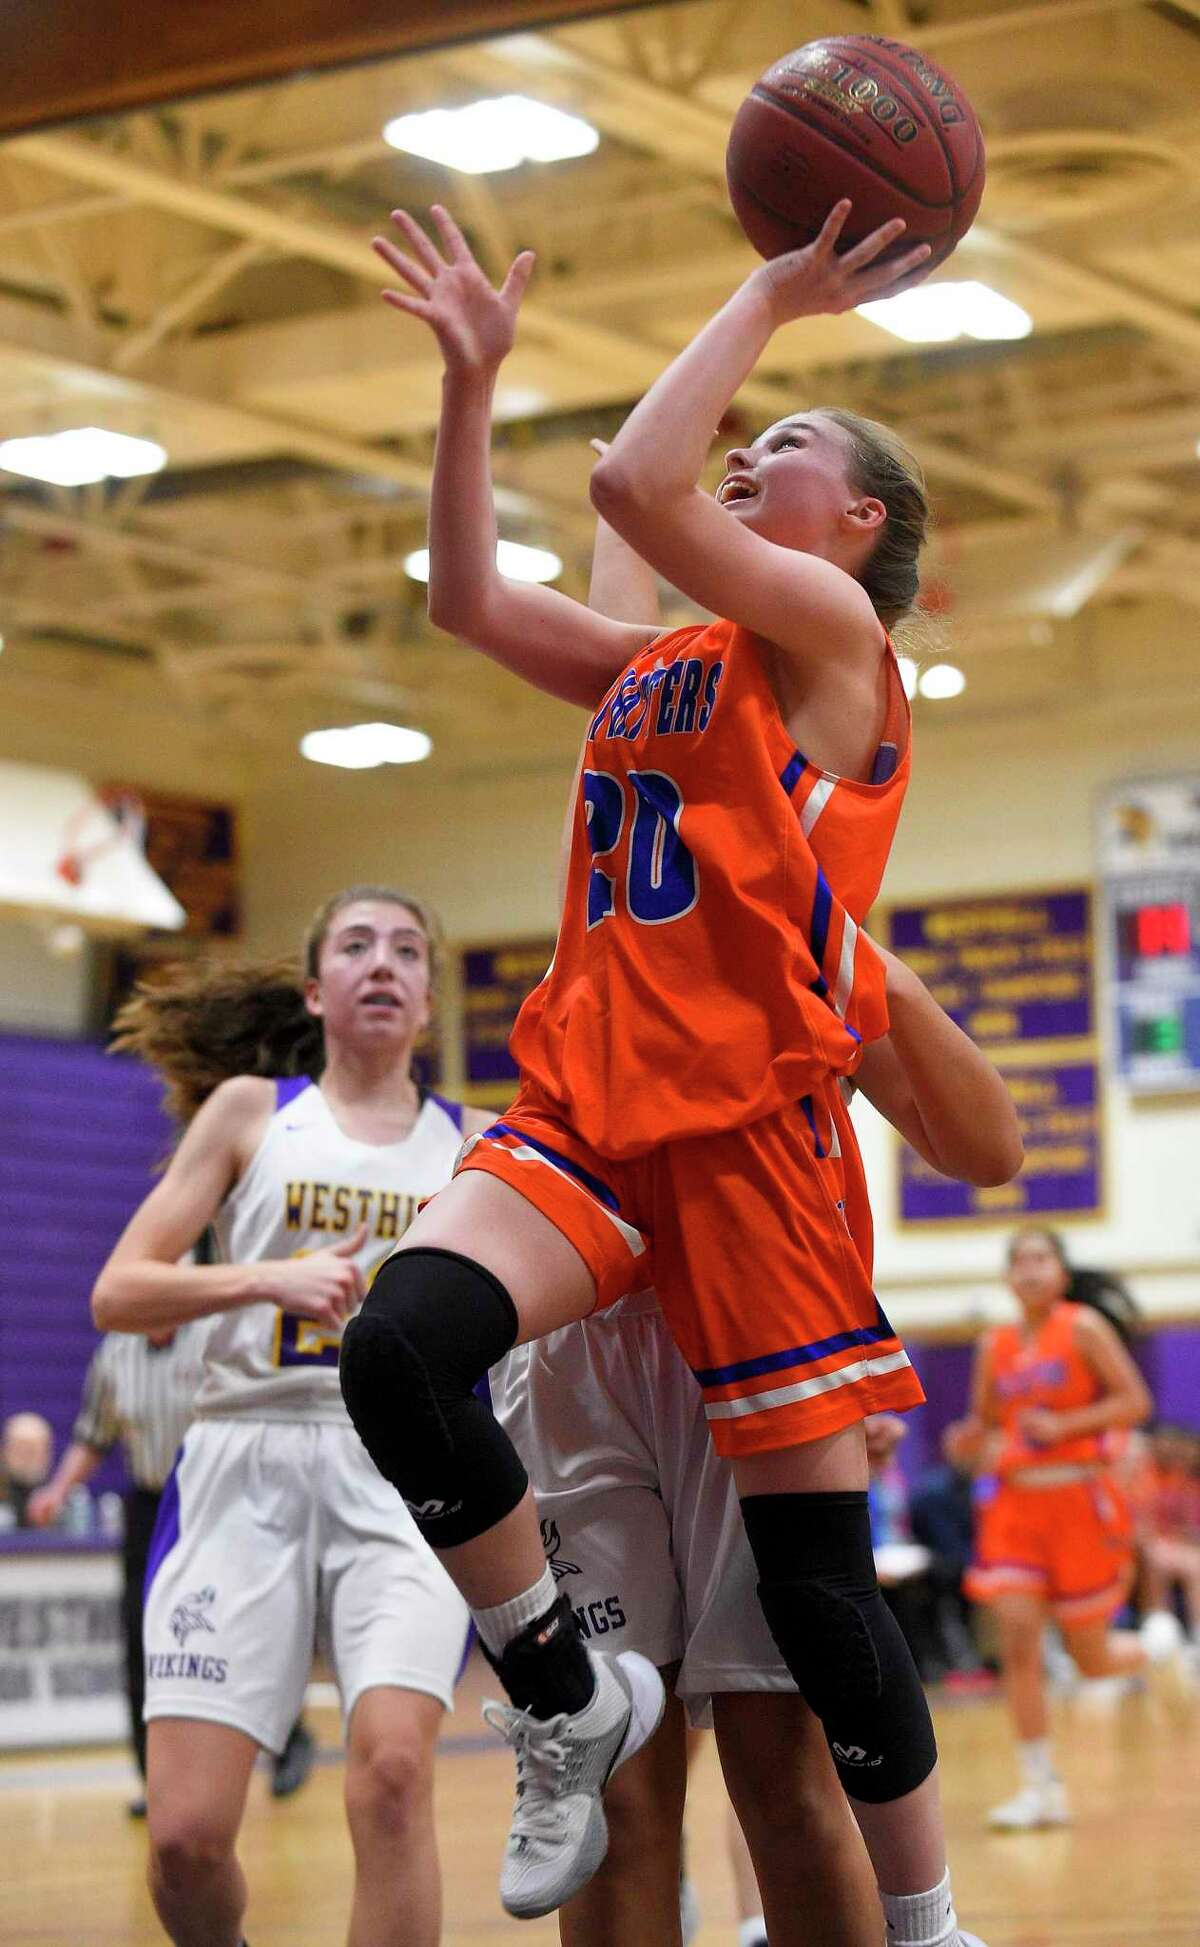 Danbury's Tenley Wallin (20) puts up a shot in the first half of an FCIAC girls basketball game against Westhill in Stamford, Conn. on Jan. 16, 2020. Danbury defeated Westhill 60-35.